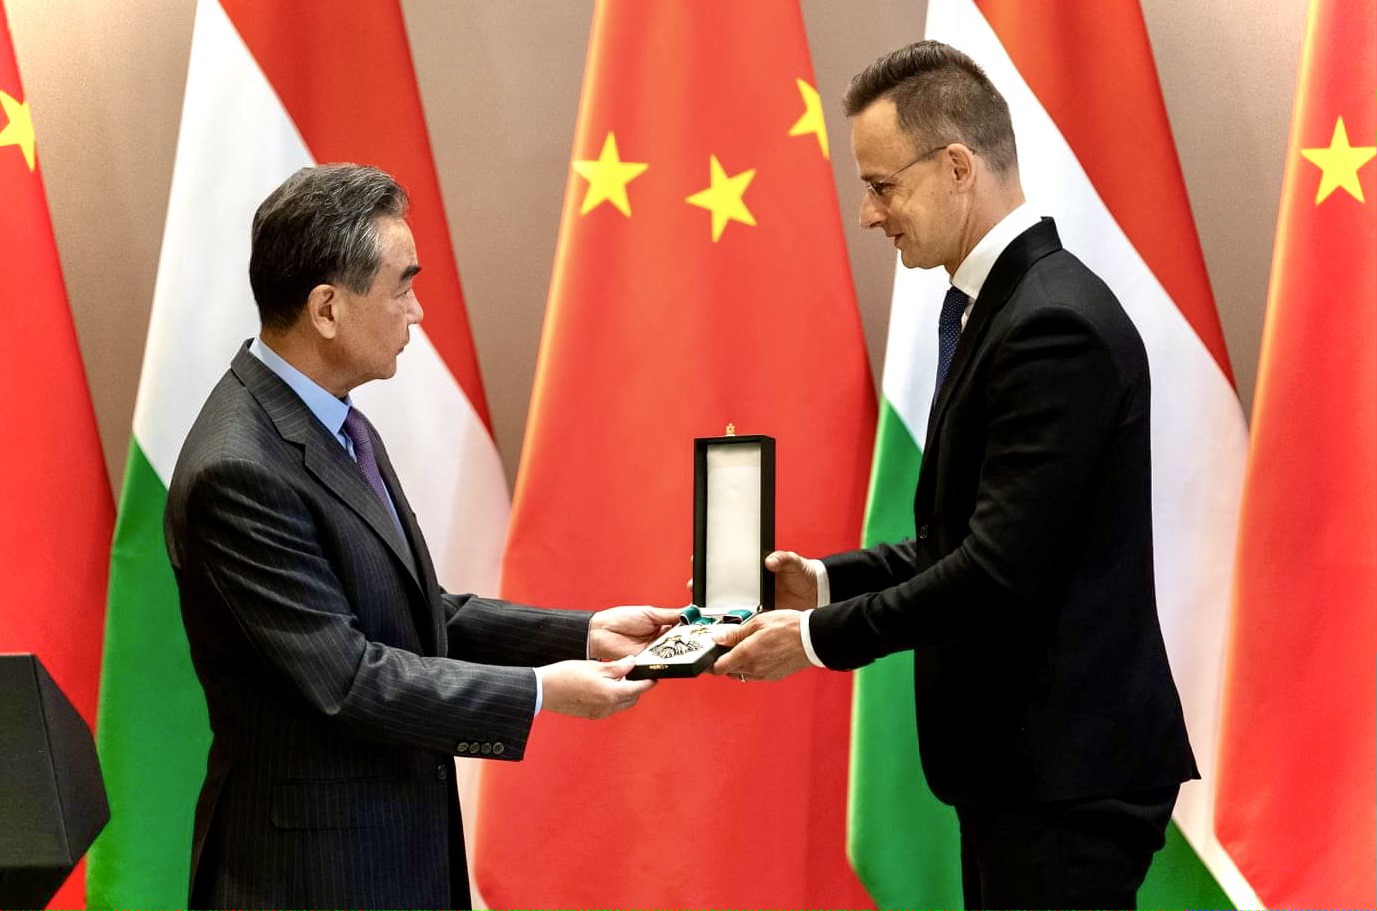 FM Szijjártó Decorates Chinese Counterpart for 'Proving His Friendship with Hungary' During Covid